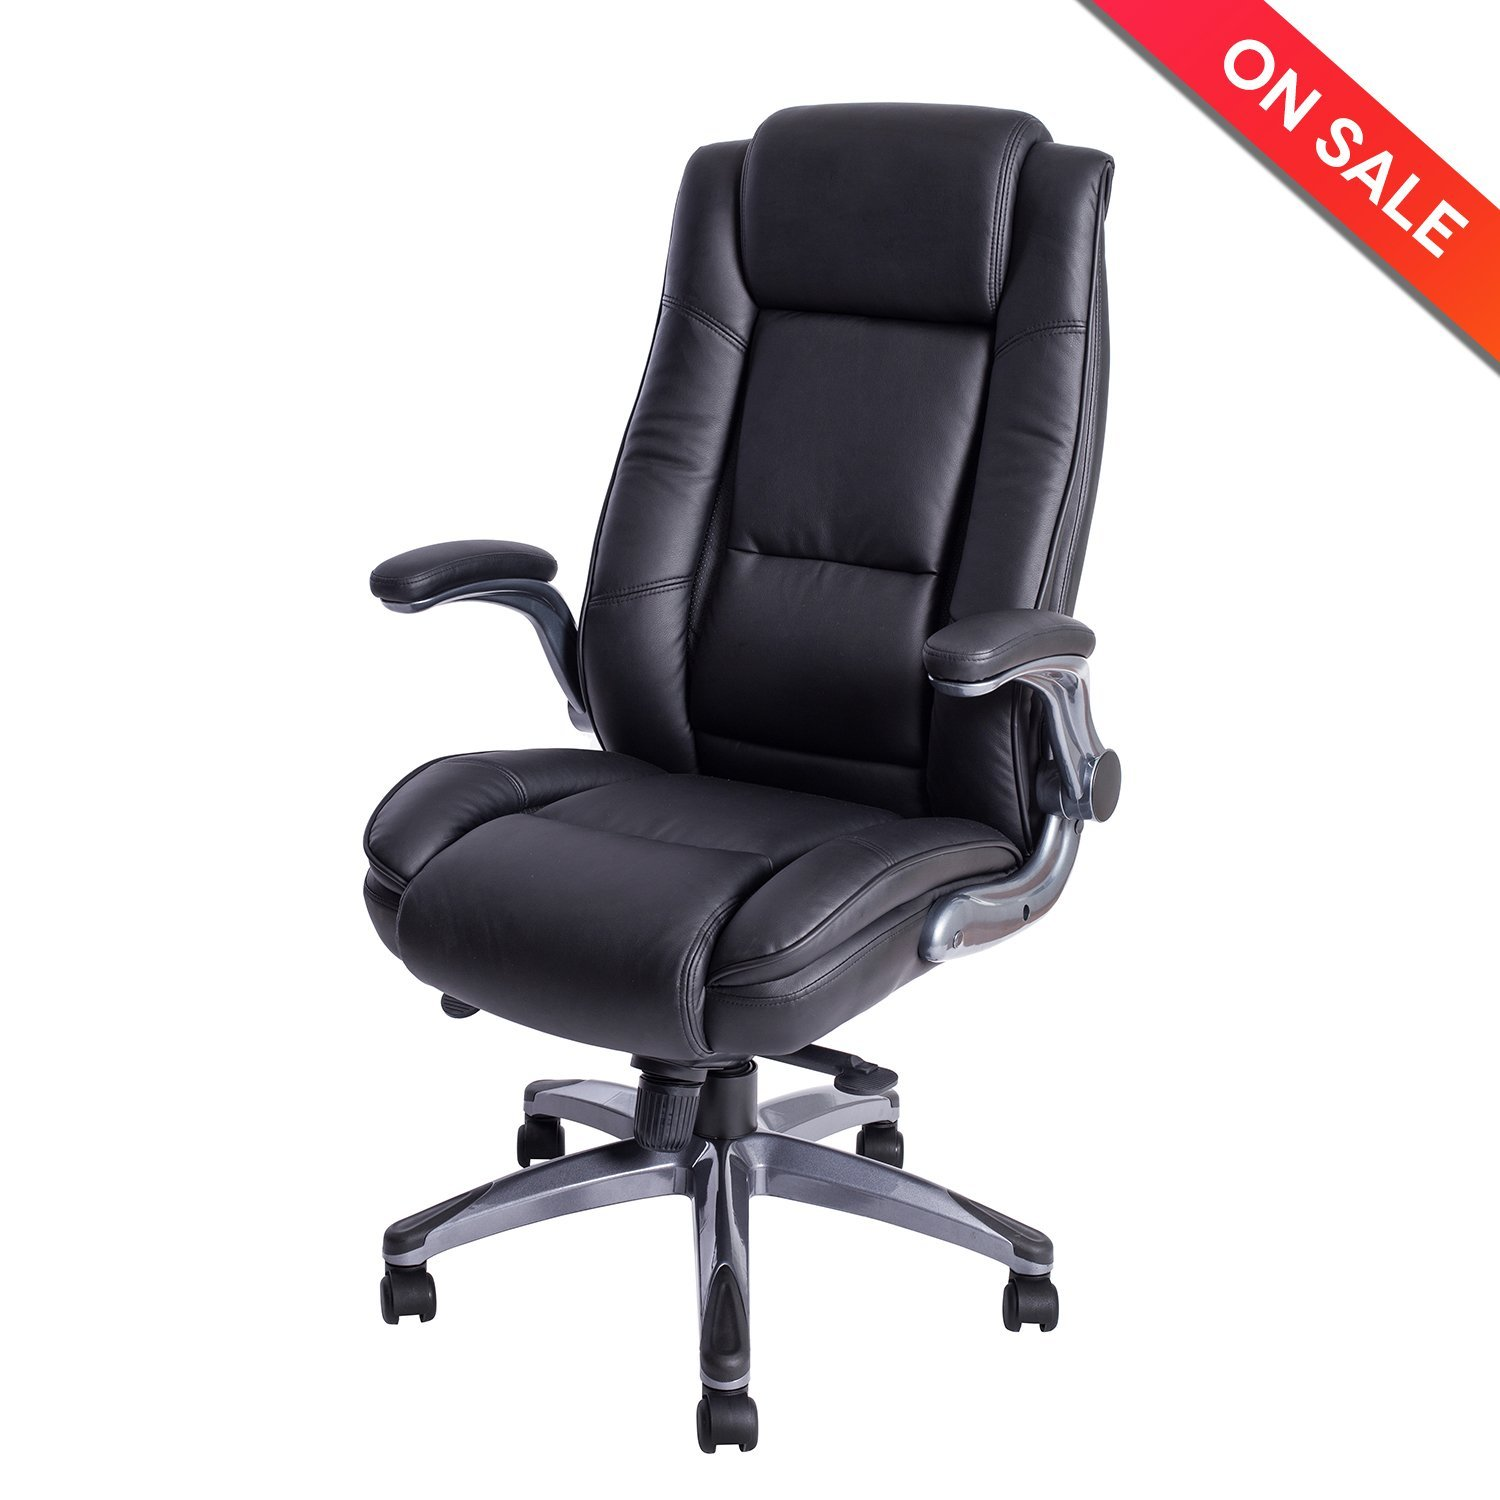 LCH High Back Leather Office Chair   Adjustable Angle Recline Locking  System And Flip Up